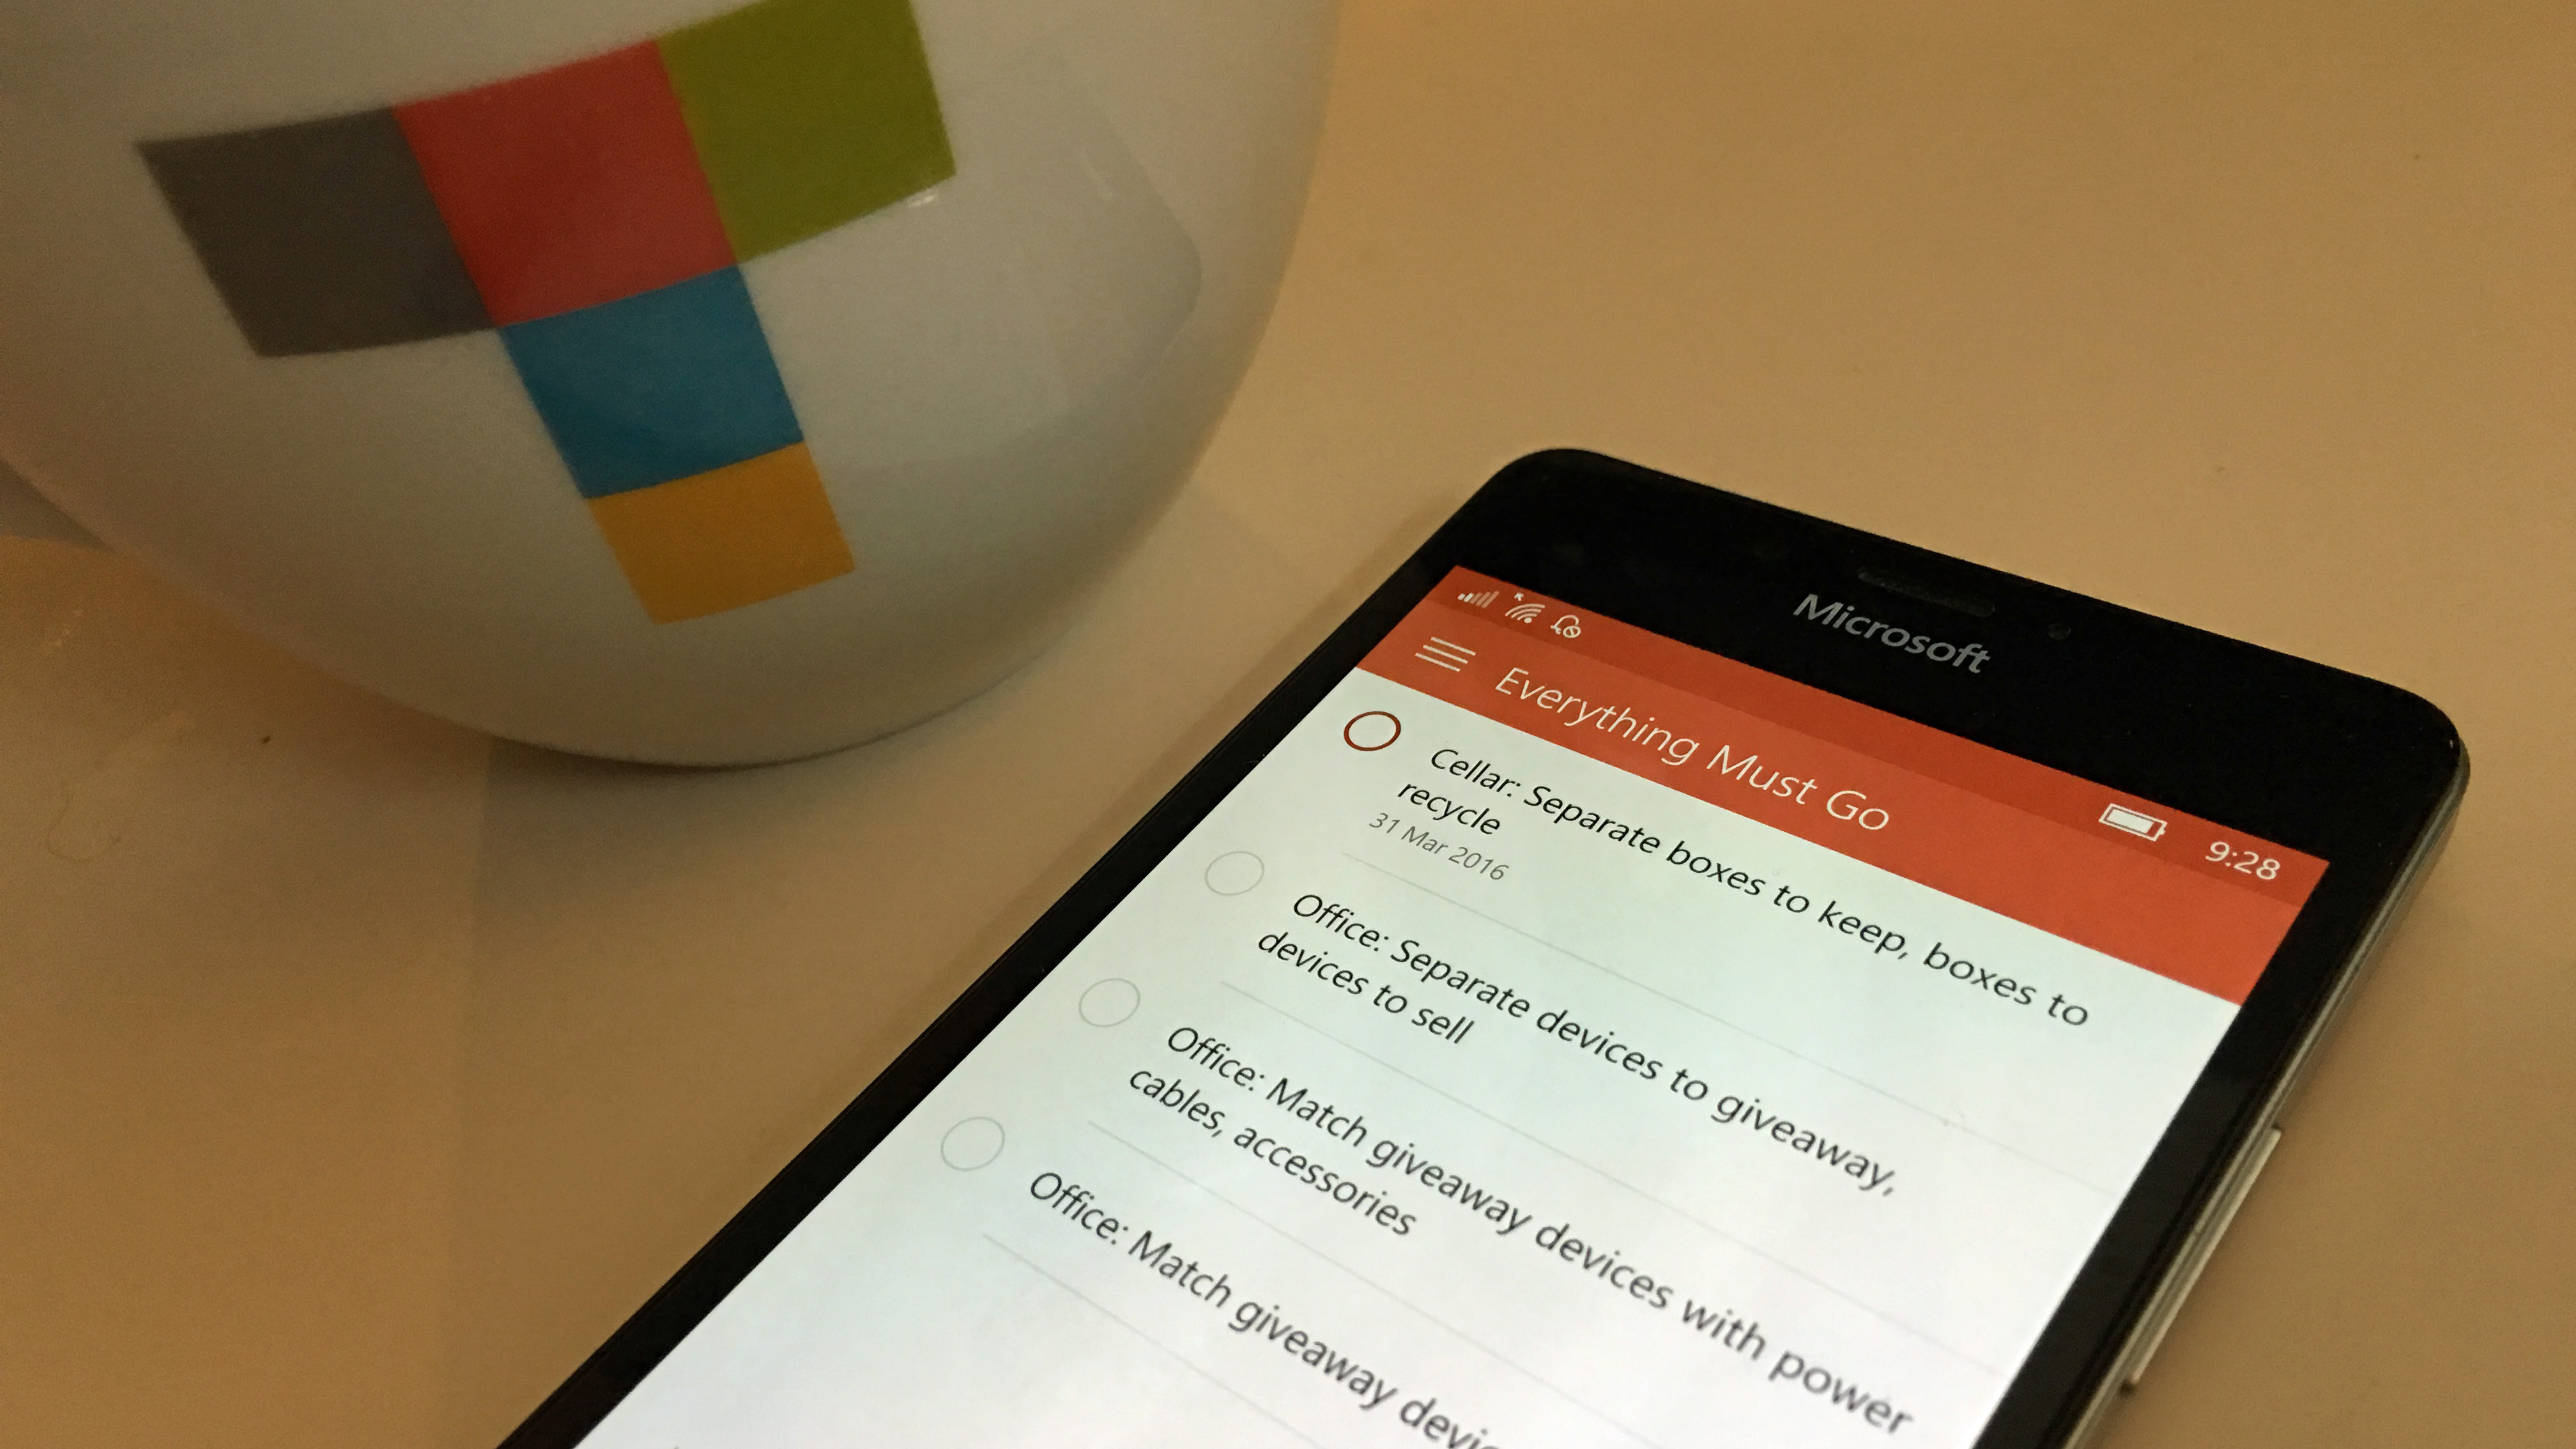 Microsoft Begins Working on new Features for To-Do